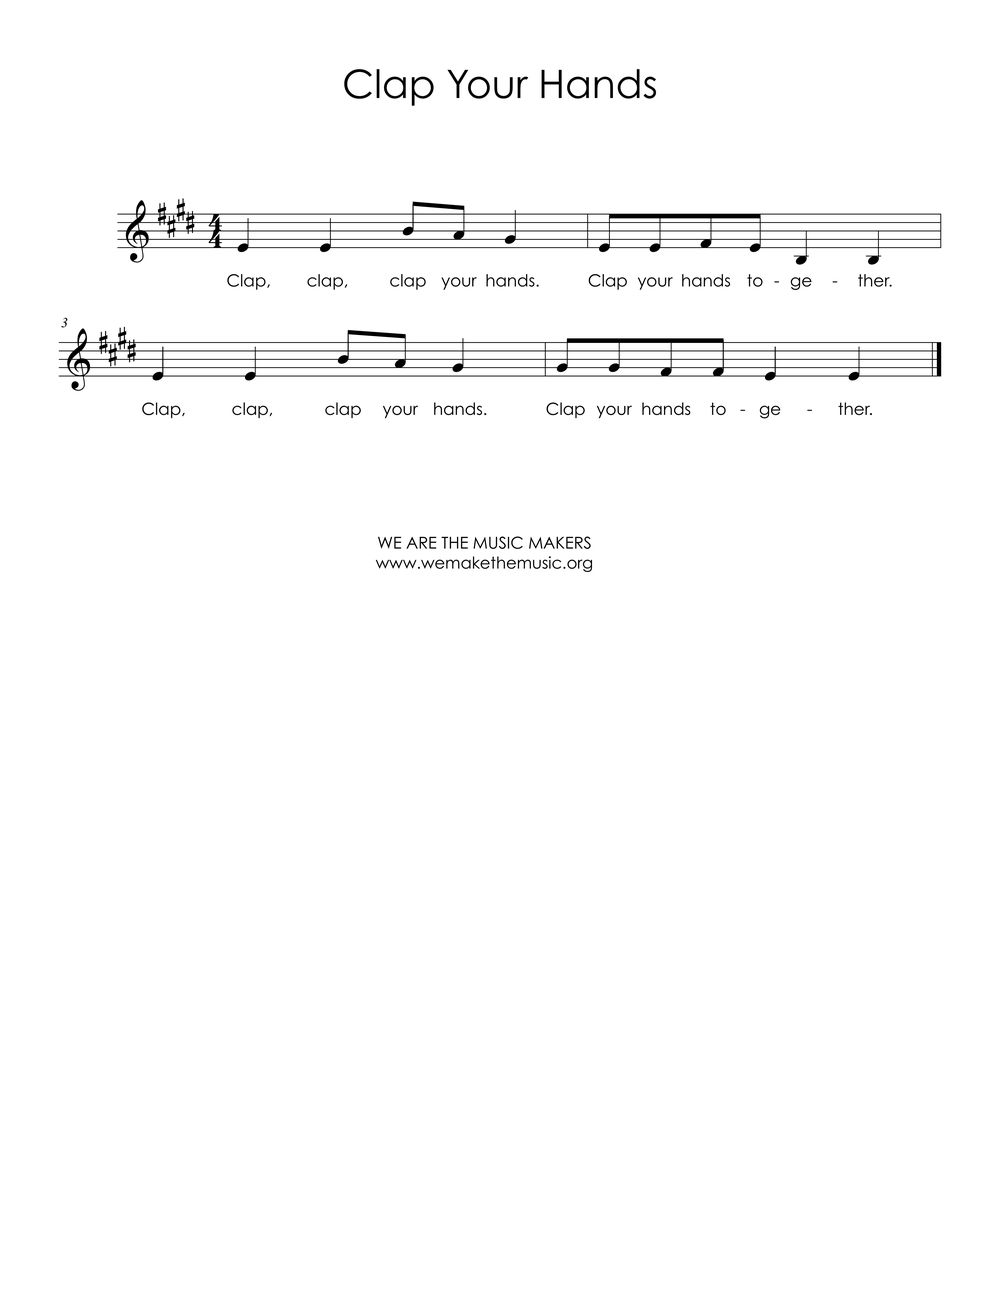 Clap your Hands Sheet Music.jpg